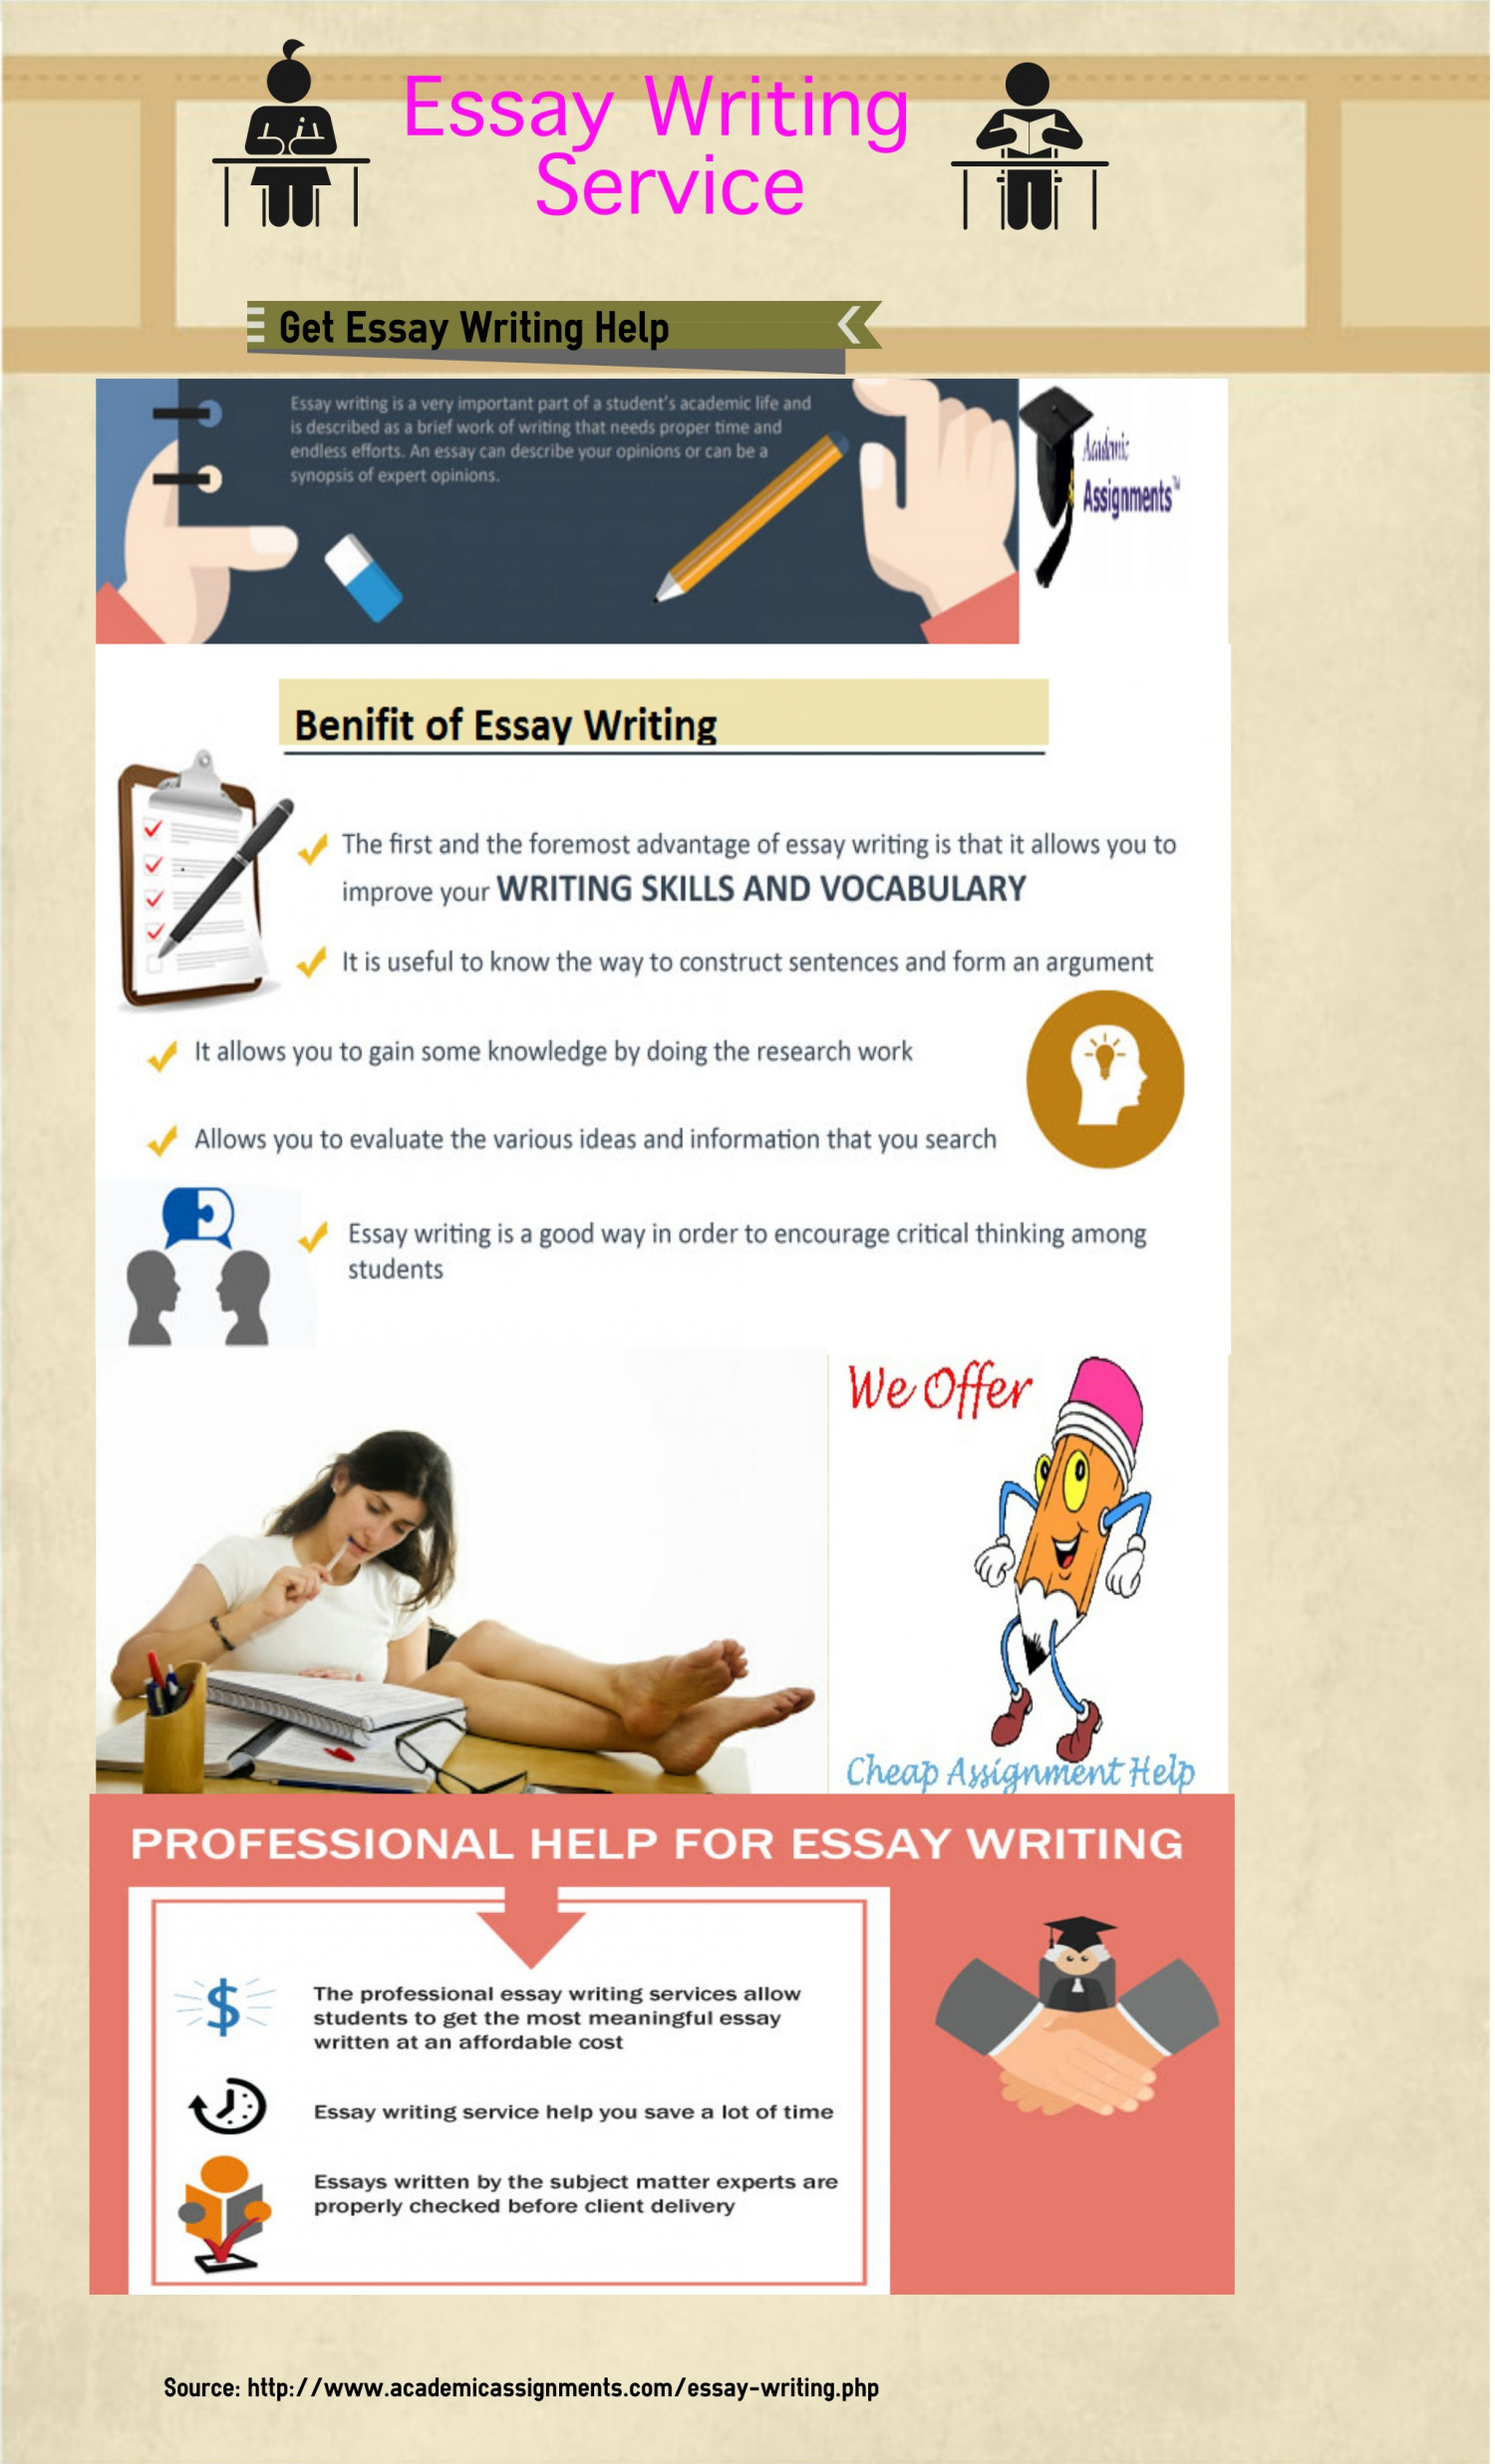 Best thesis writing services victoria bc